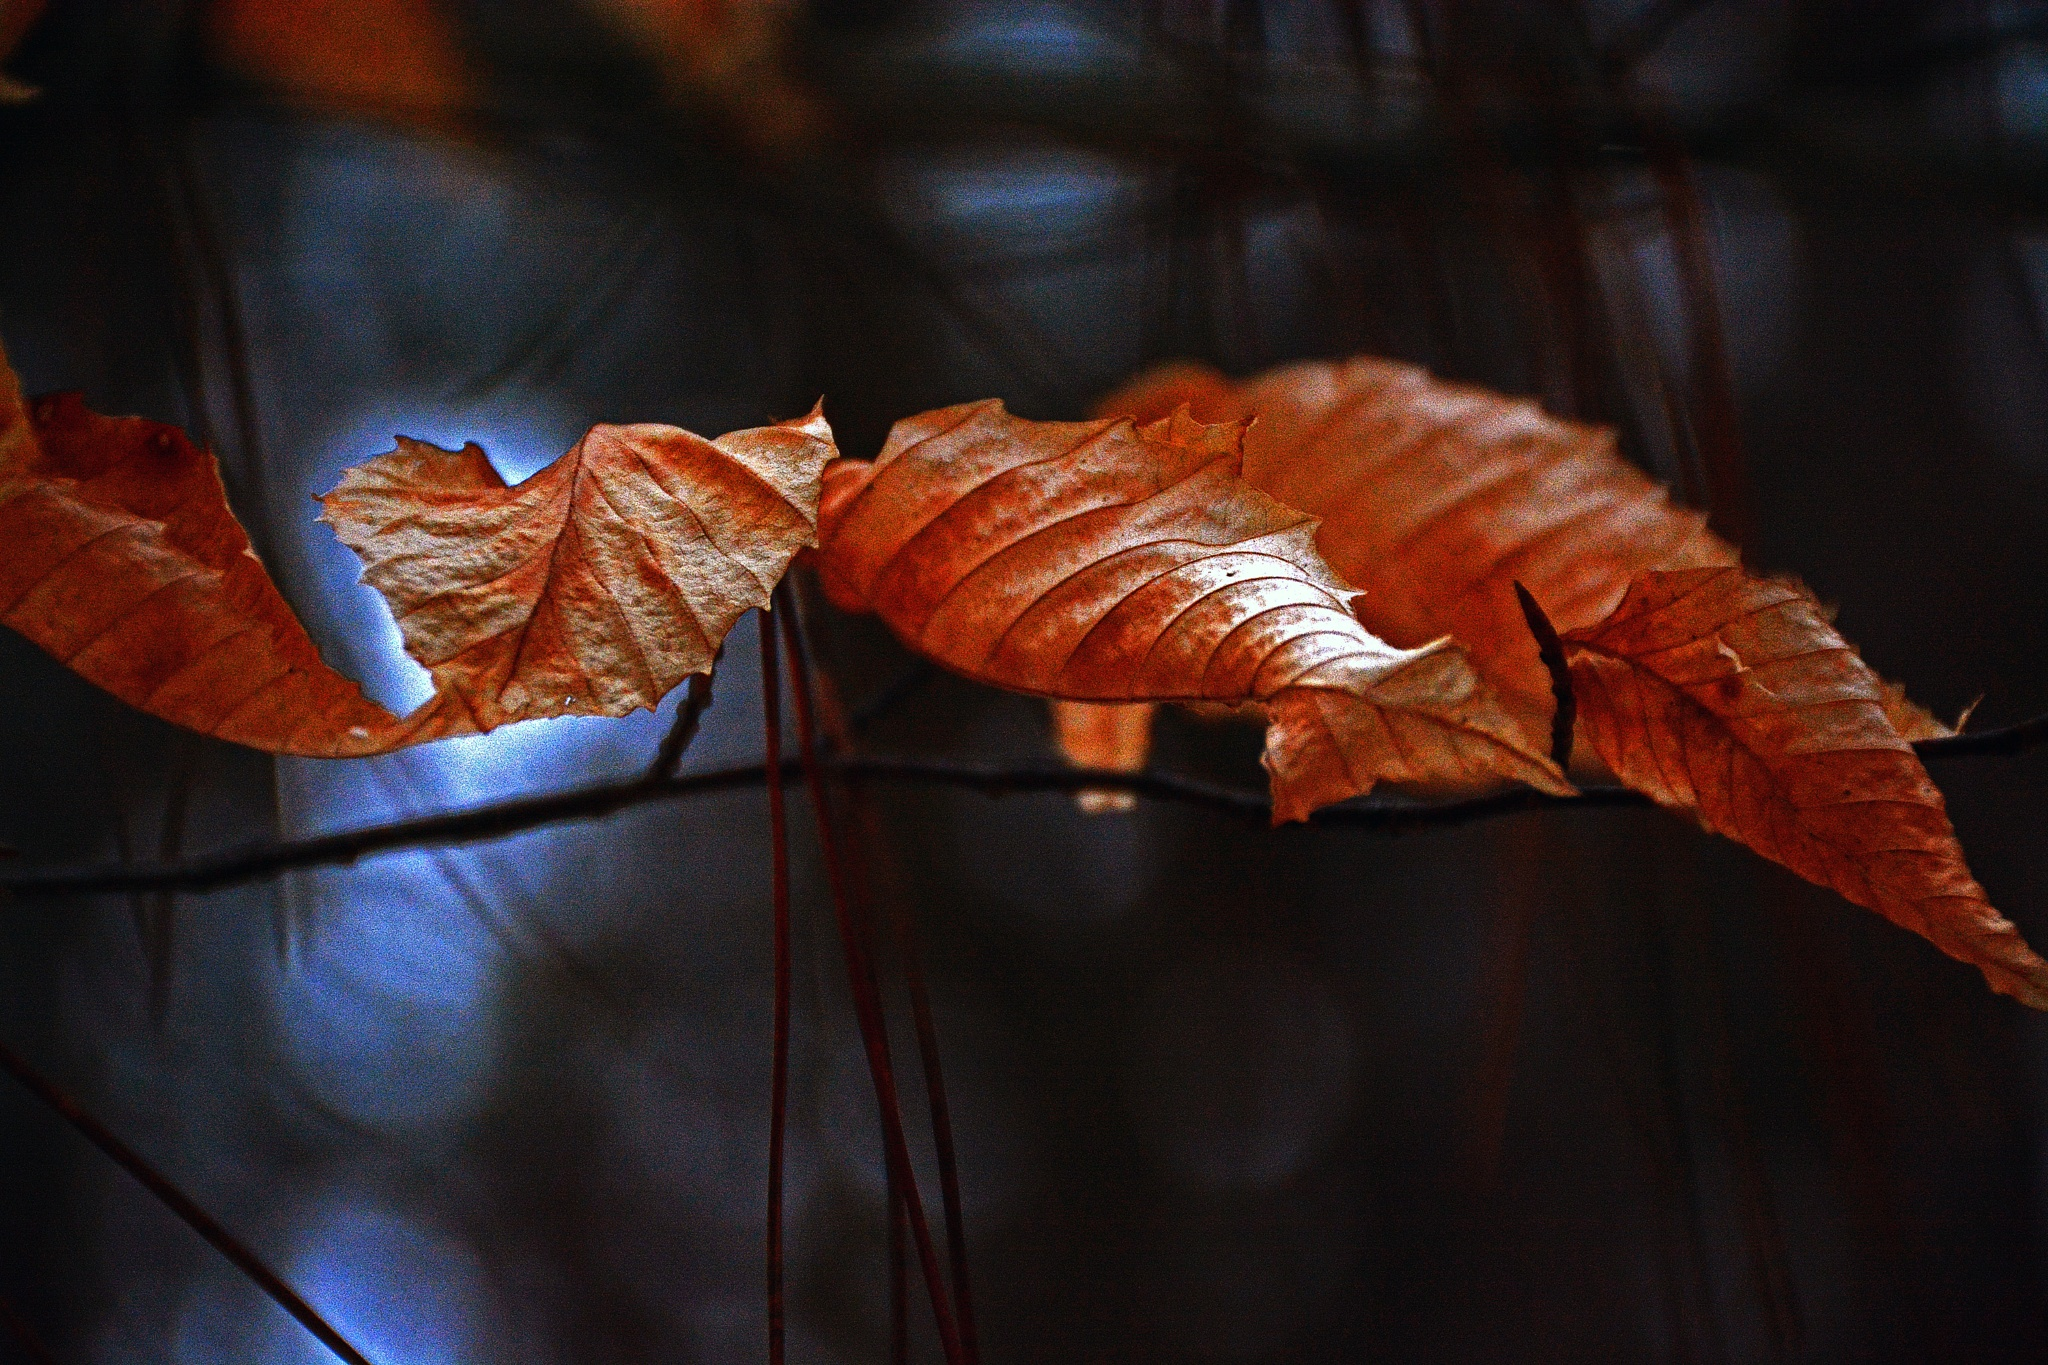 Needles and leaves by William C. Burton